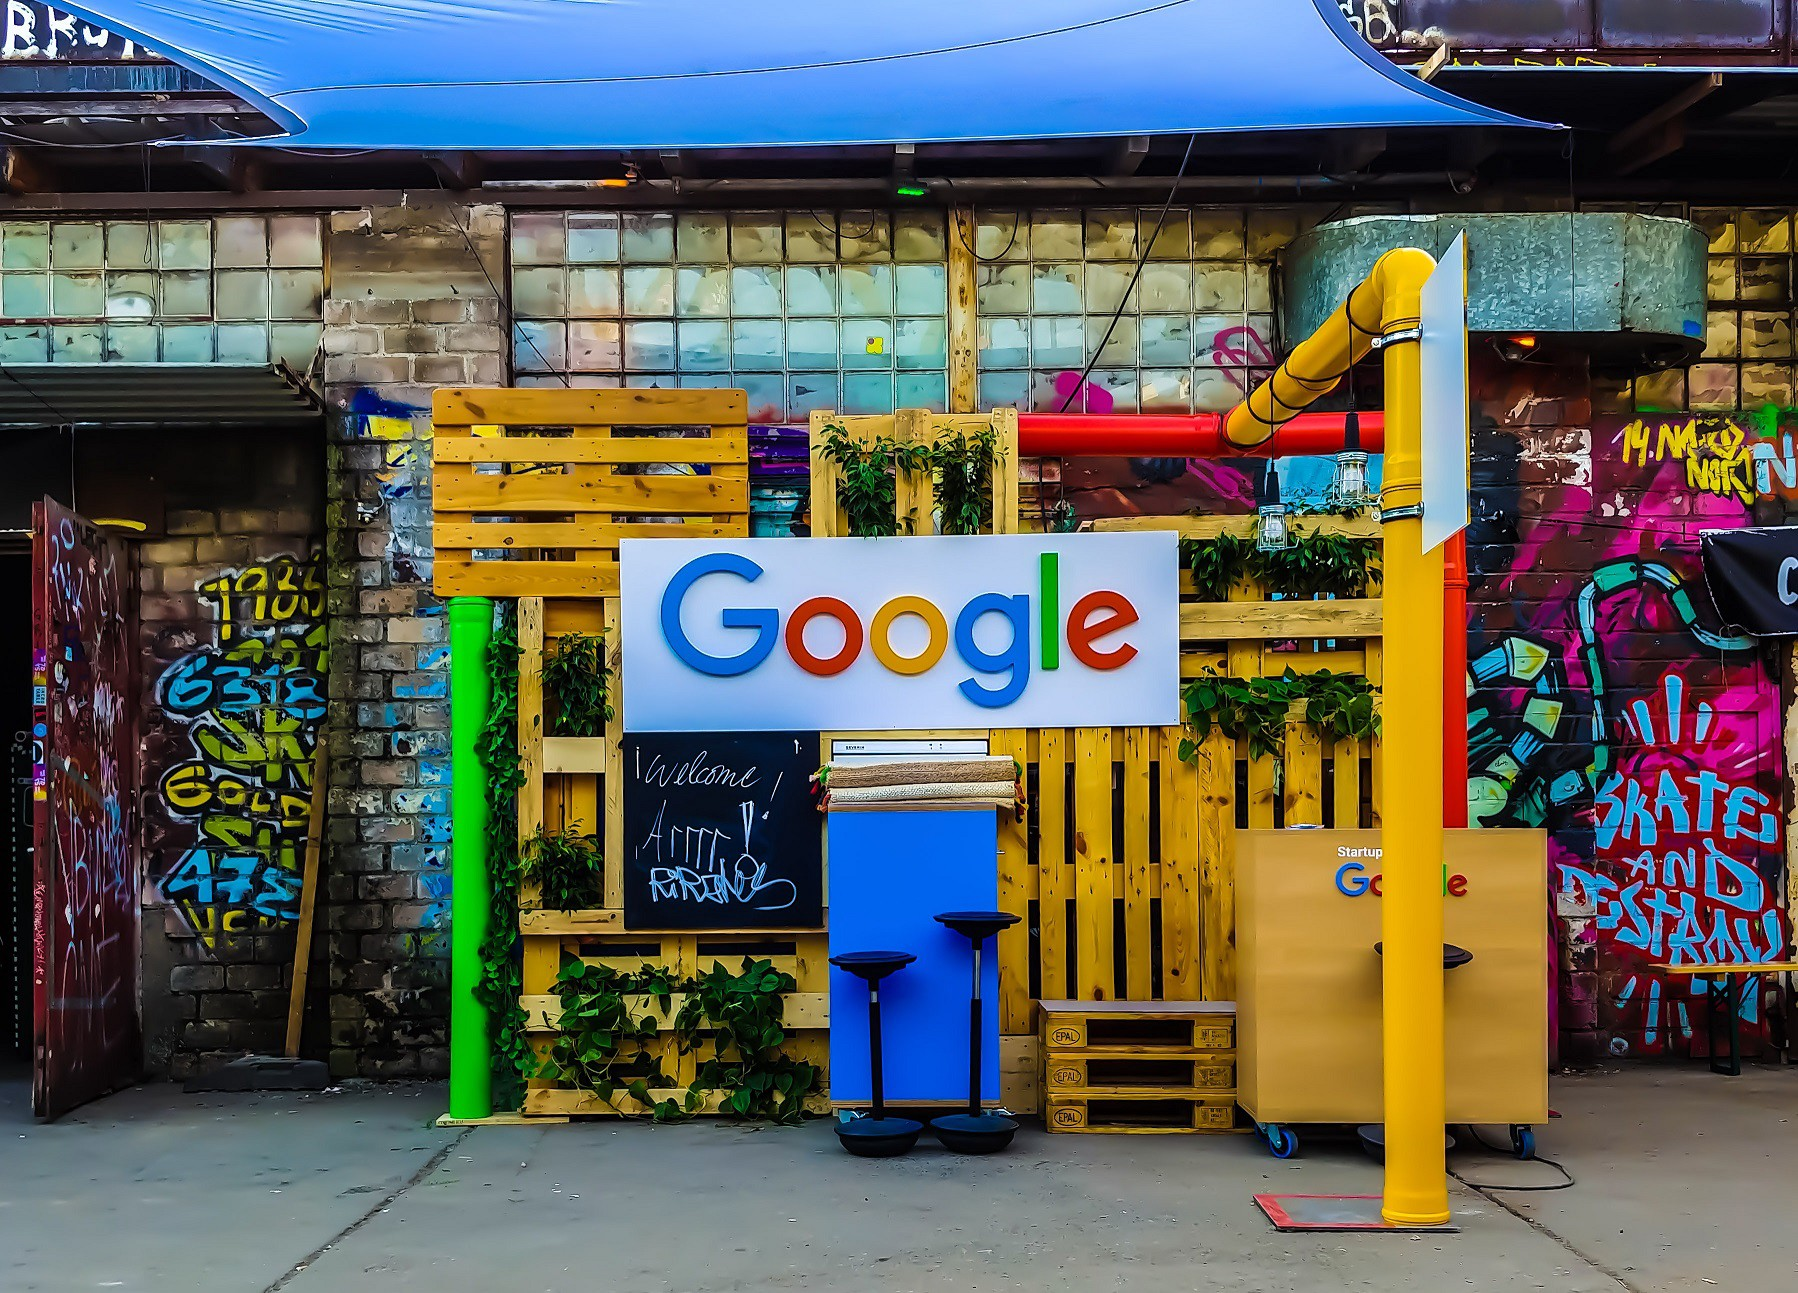 A Google sign at a stand outdoors in a backyard type setting